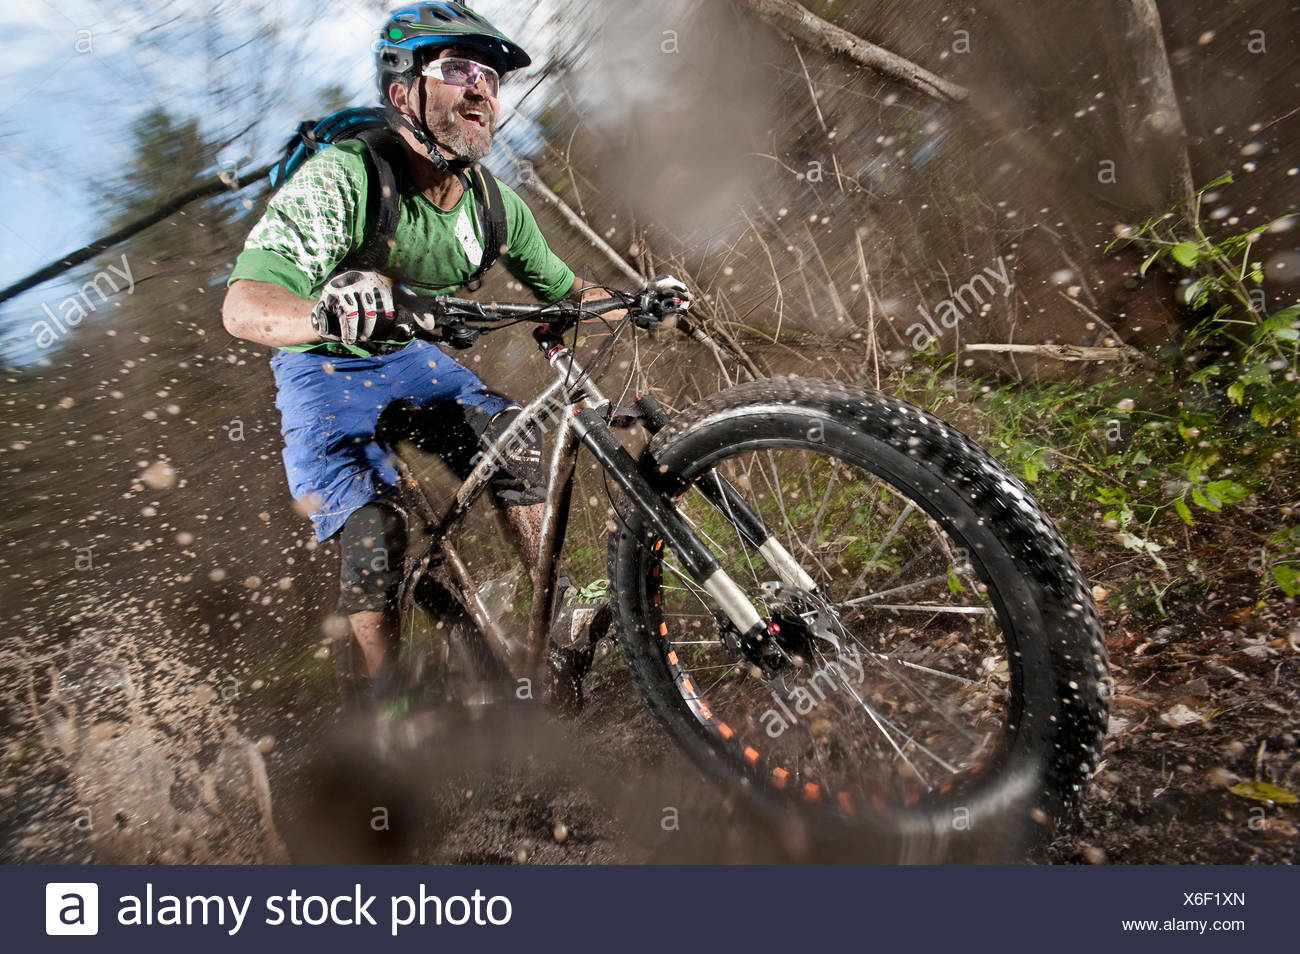 Mountain biker riding on a dirt road, Bavaria, Germany - Stock Image